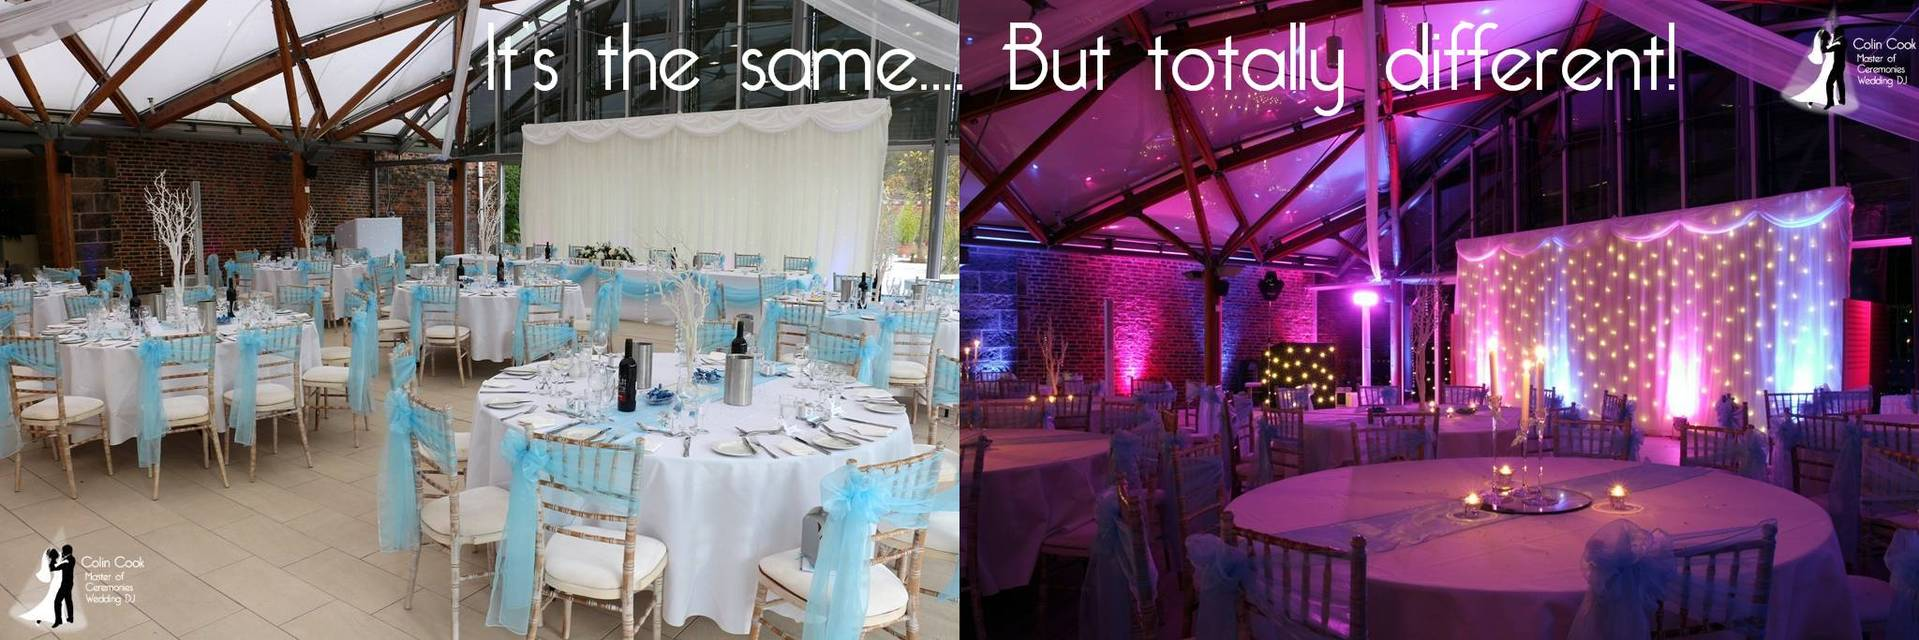 Alnwick Garden Pavilion during the Day and at Night showing a real WOW factor